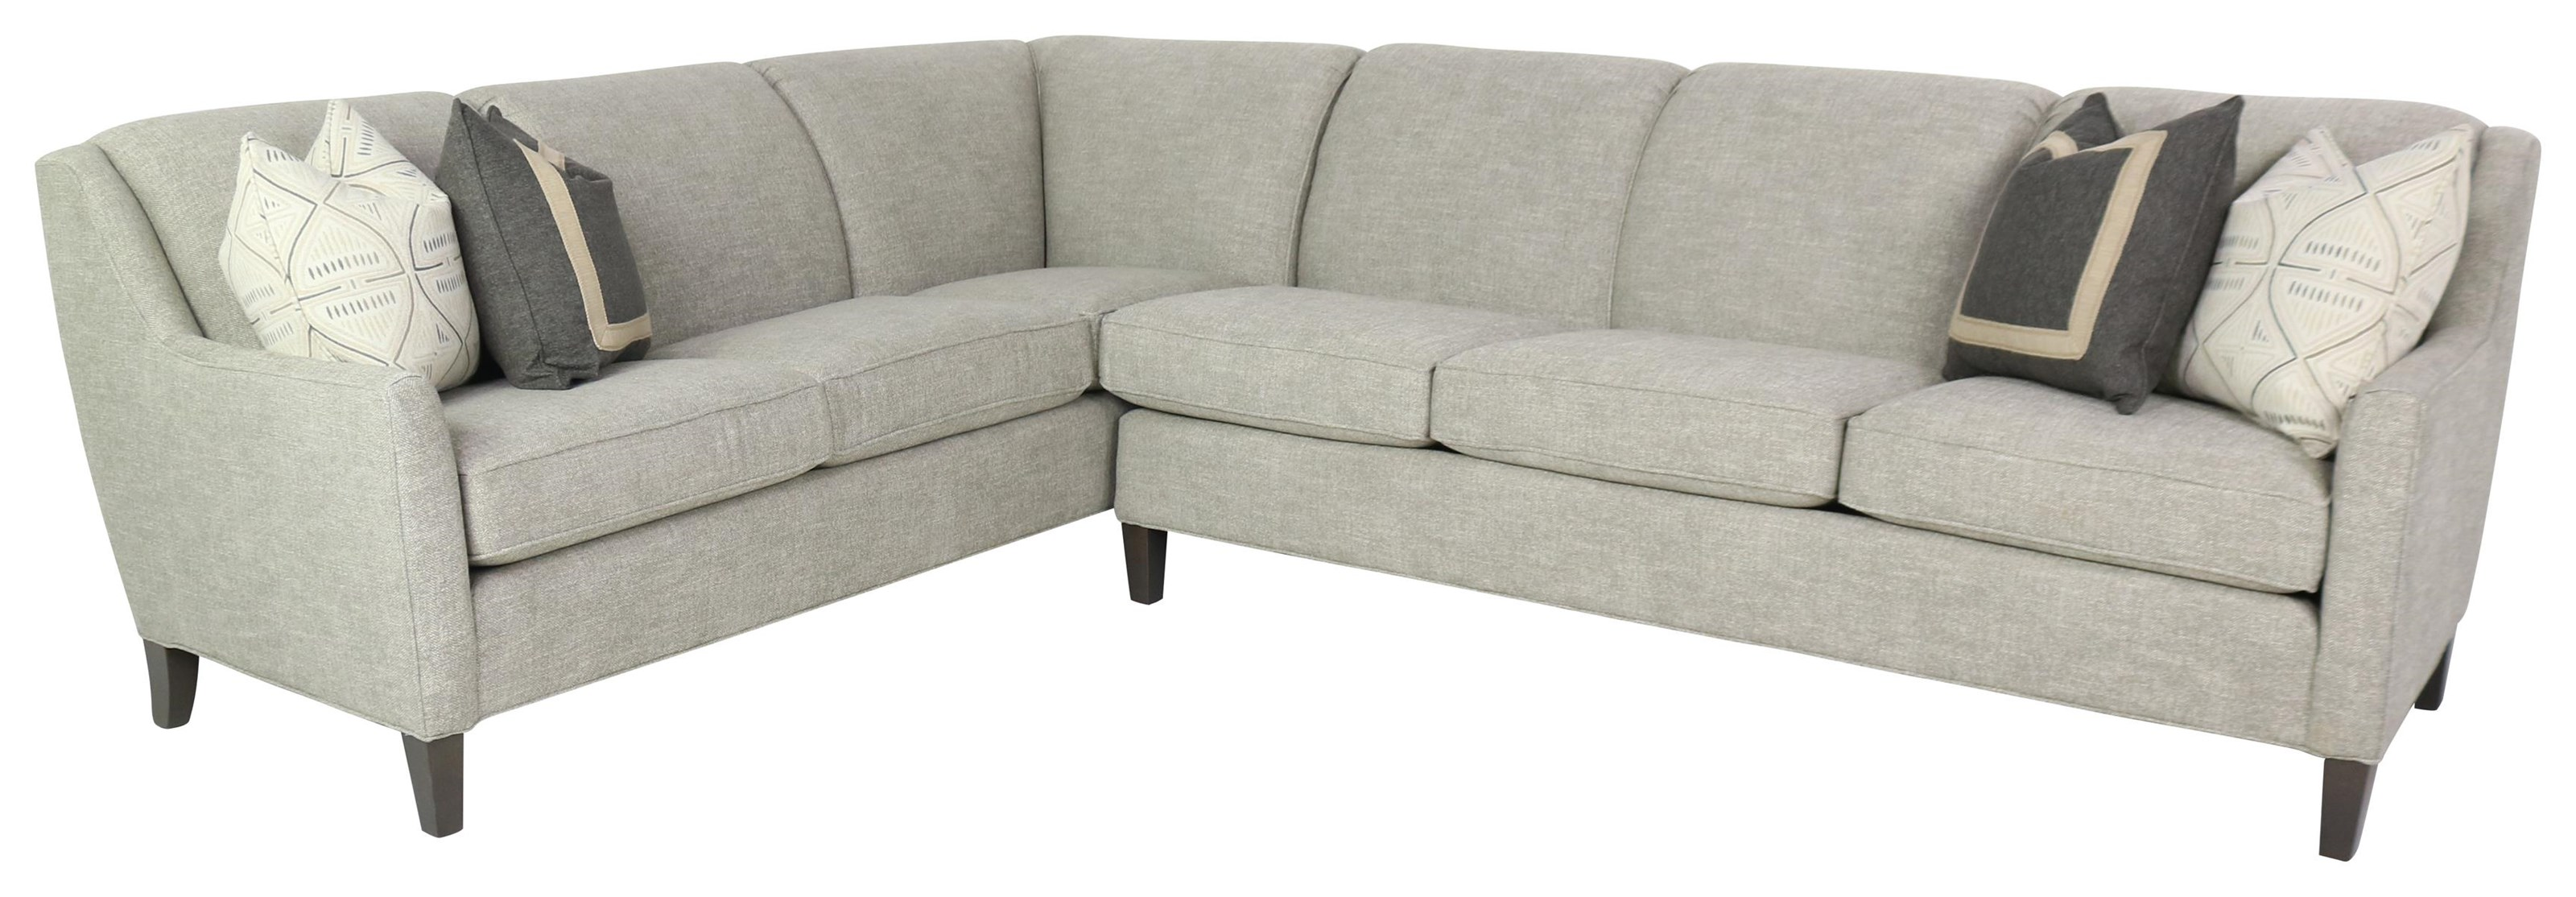 248 Sofa by Smith Brothers at Sprintz Furniture